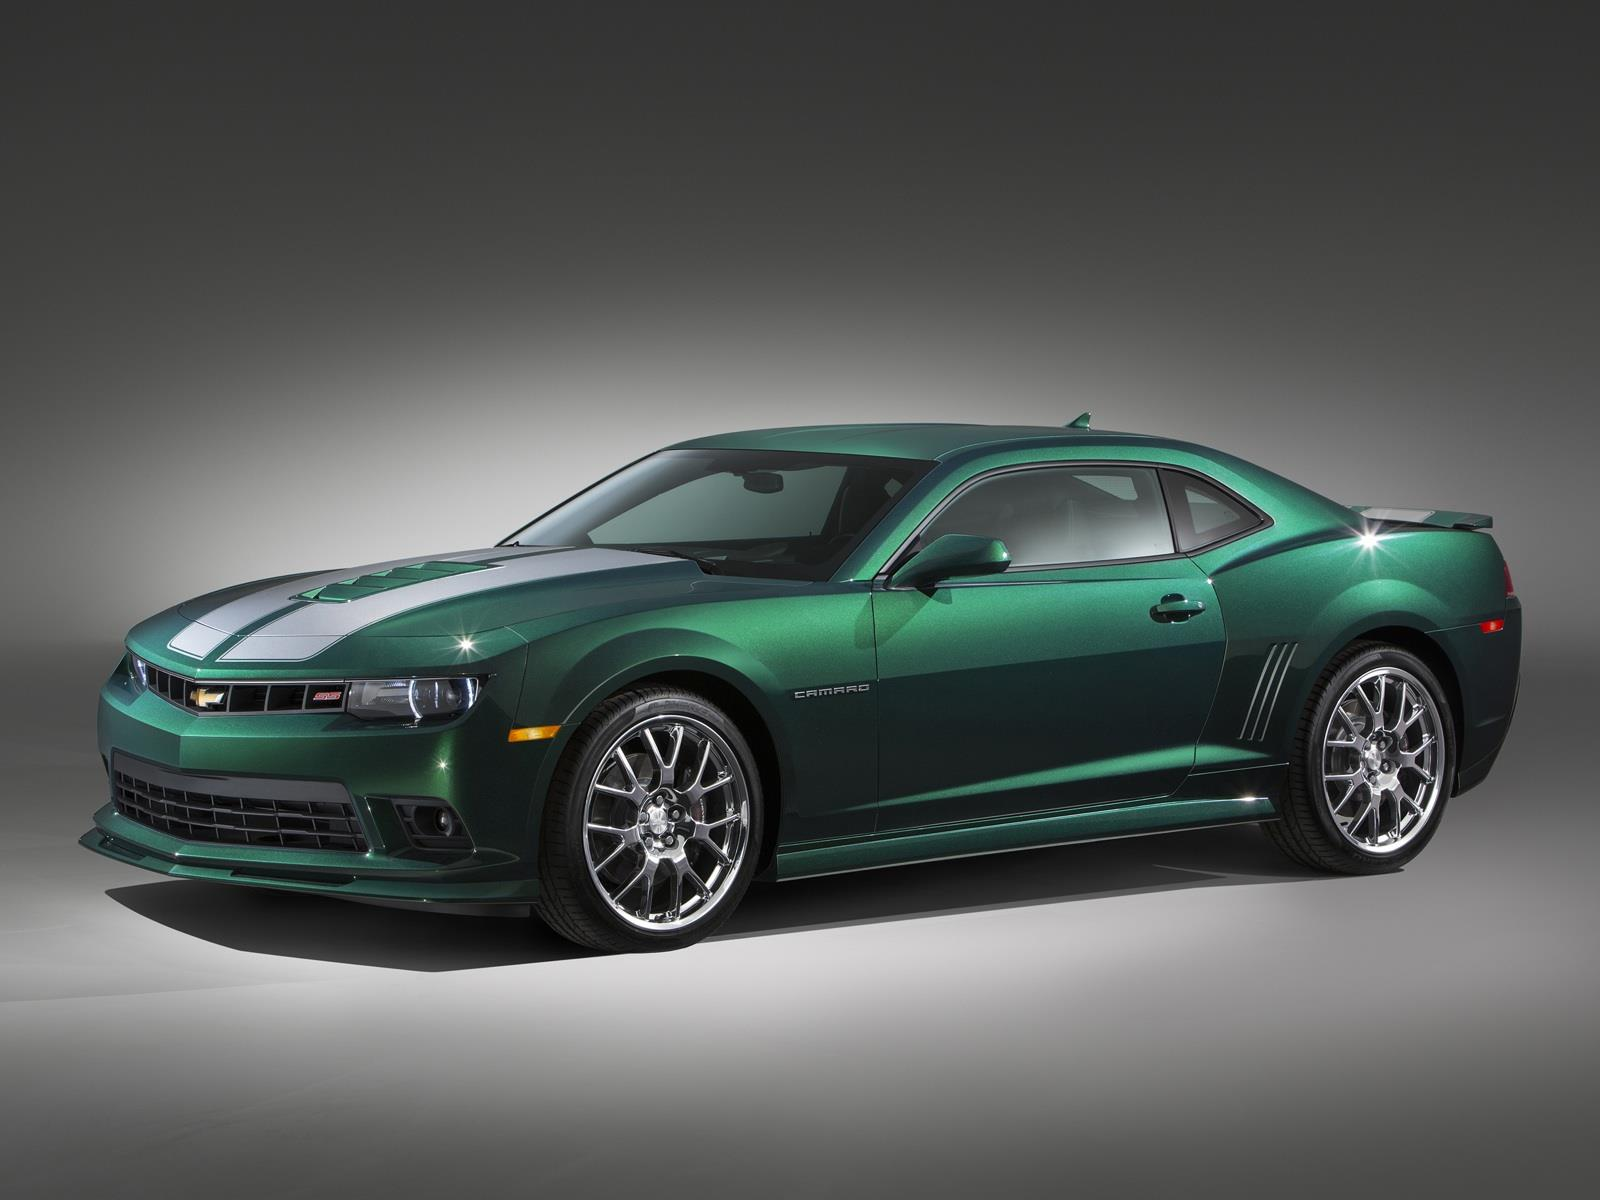 Chevrolet Camaro Commemorative Special Edition 2015 En El